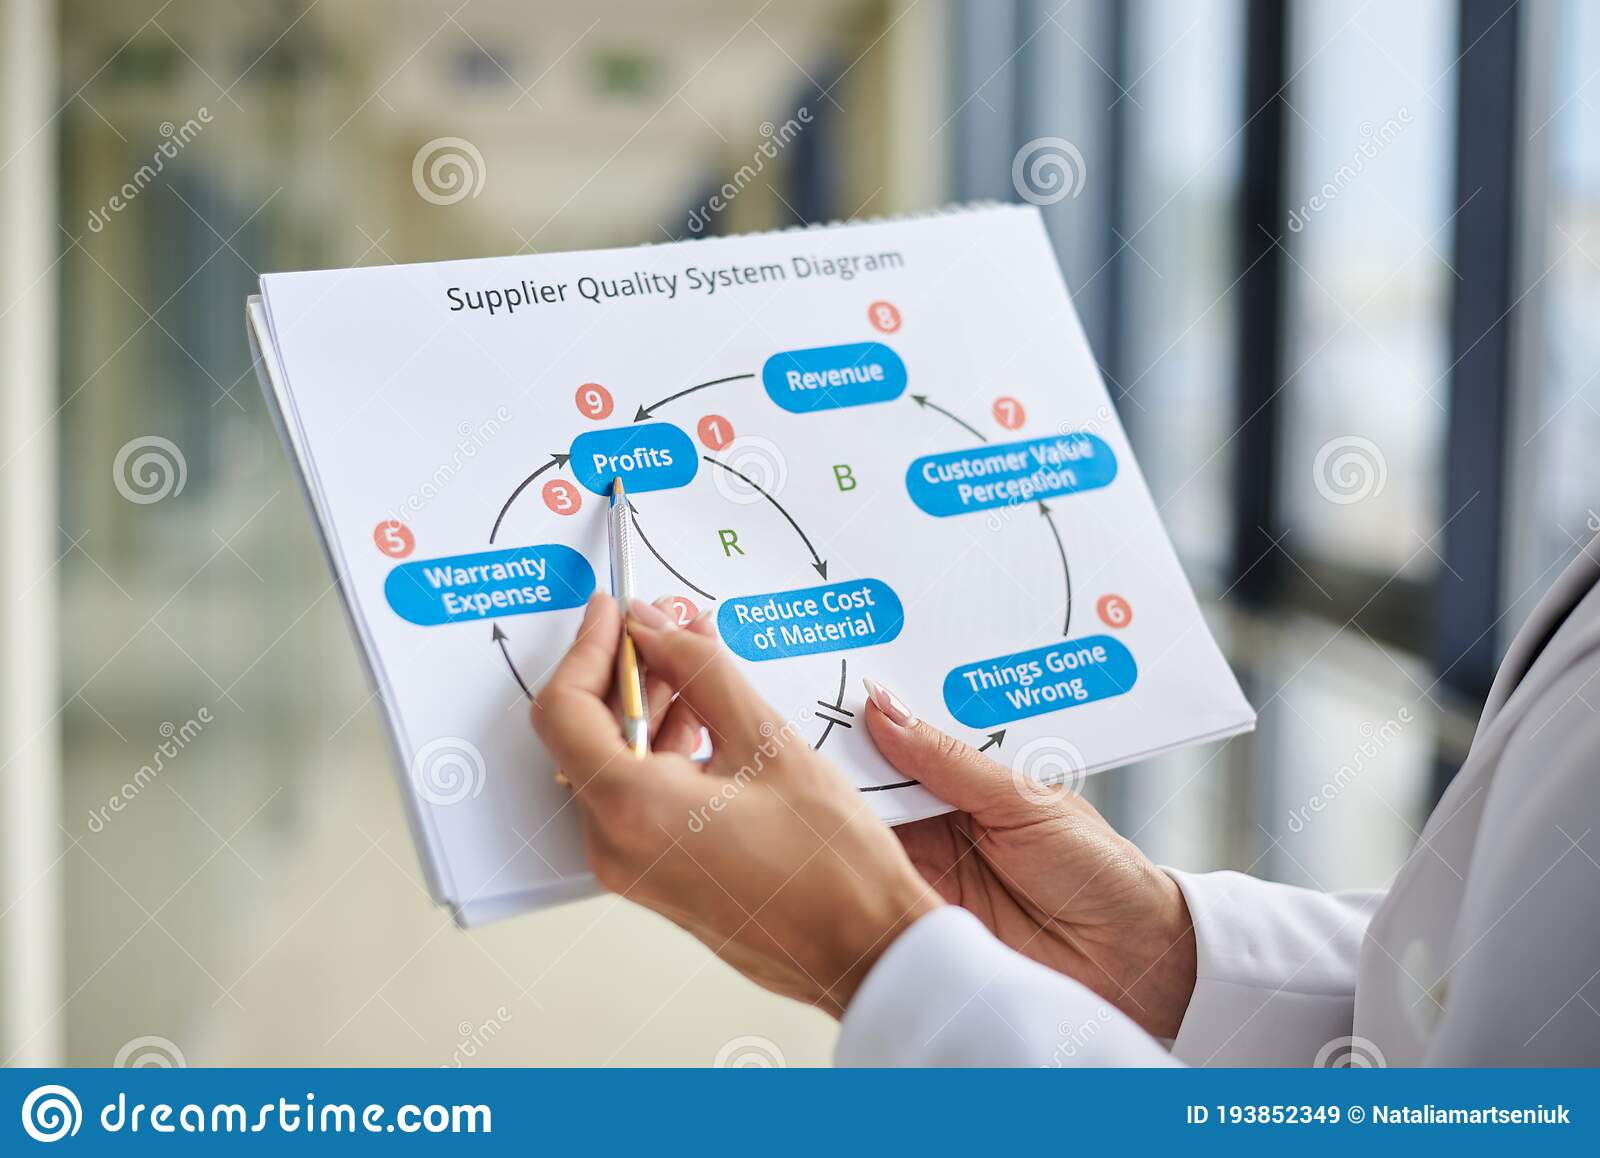 Close-up Picture Of Paper Sheet With Supplier Quality System Diagram On It,  Held In Hands Of Young Businesswoman, Office Worker Stock Image - Image of  informational, businesswoman: 193852349Dreamstime.com